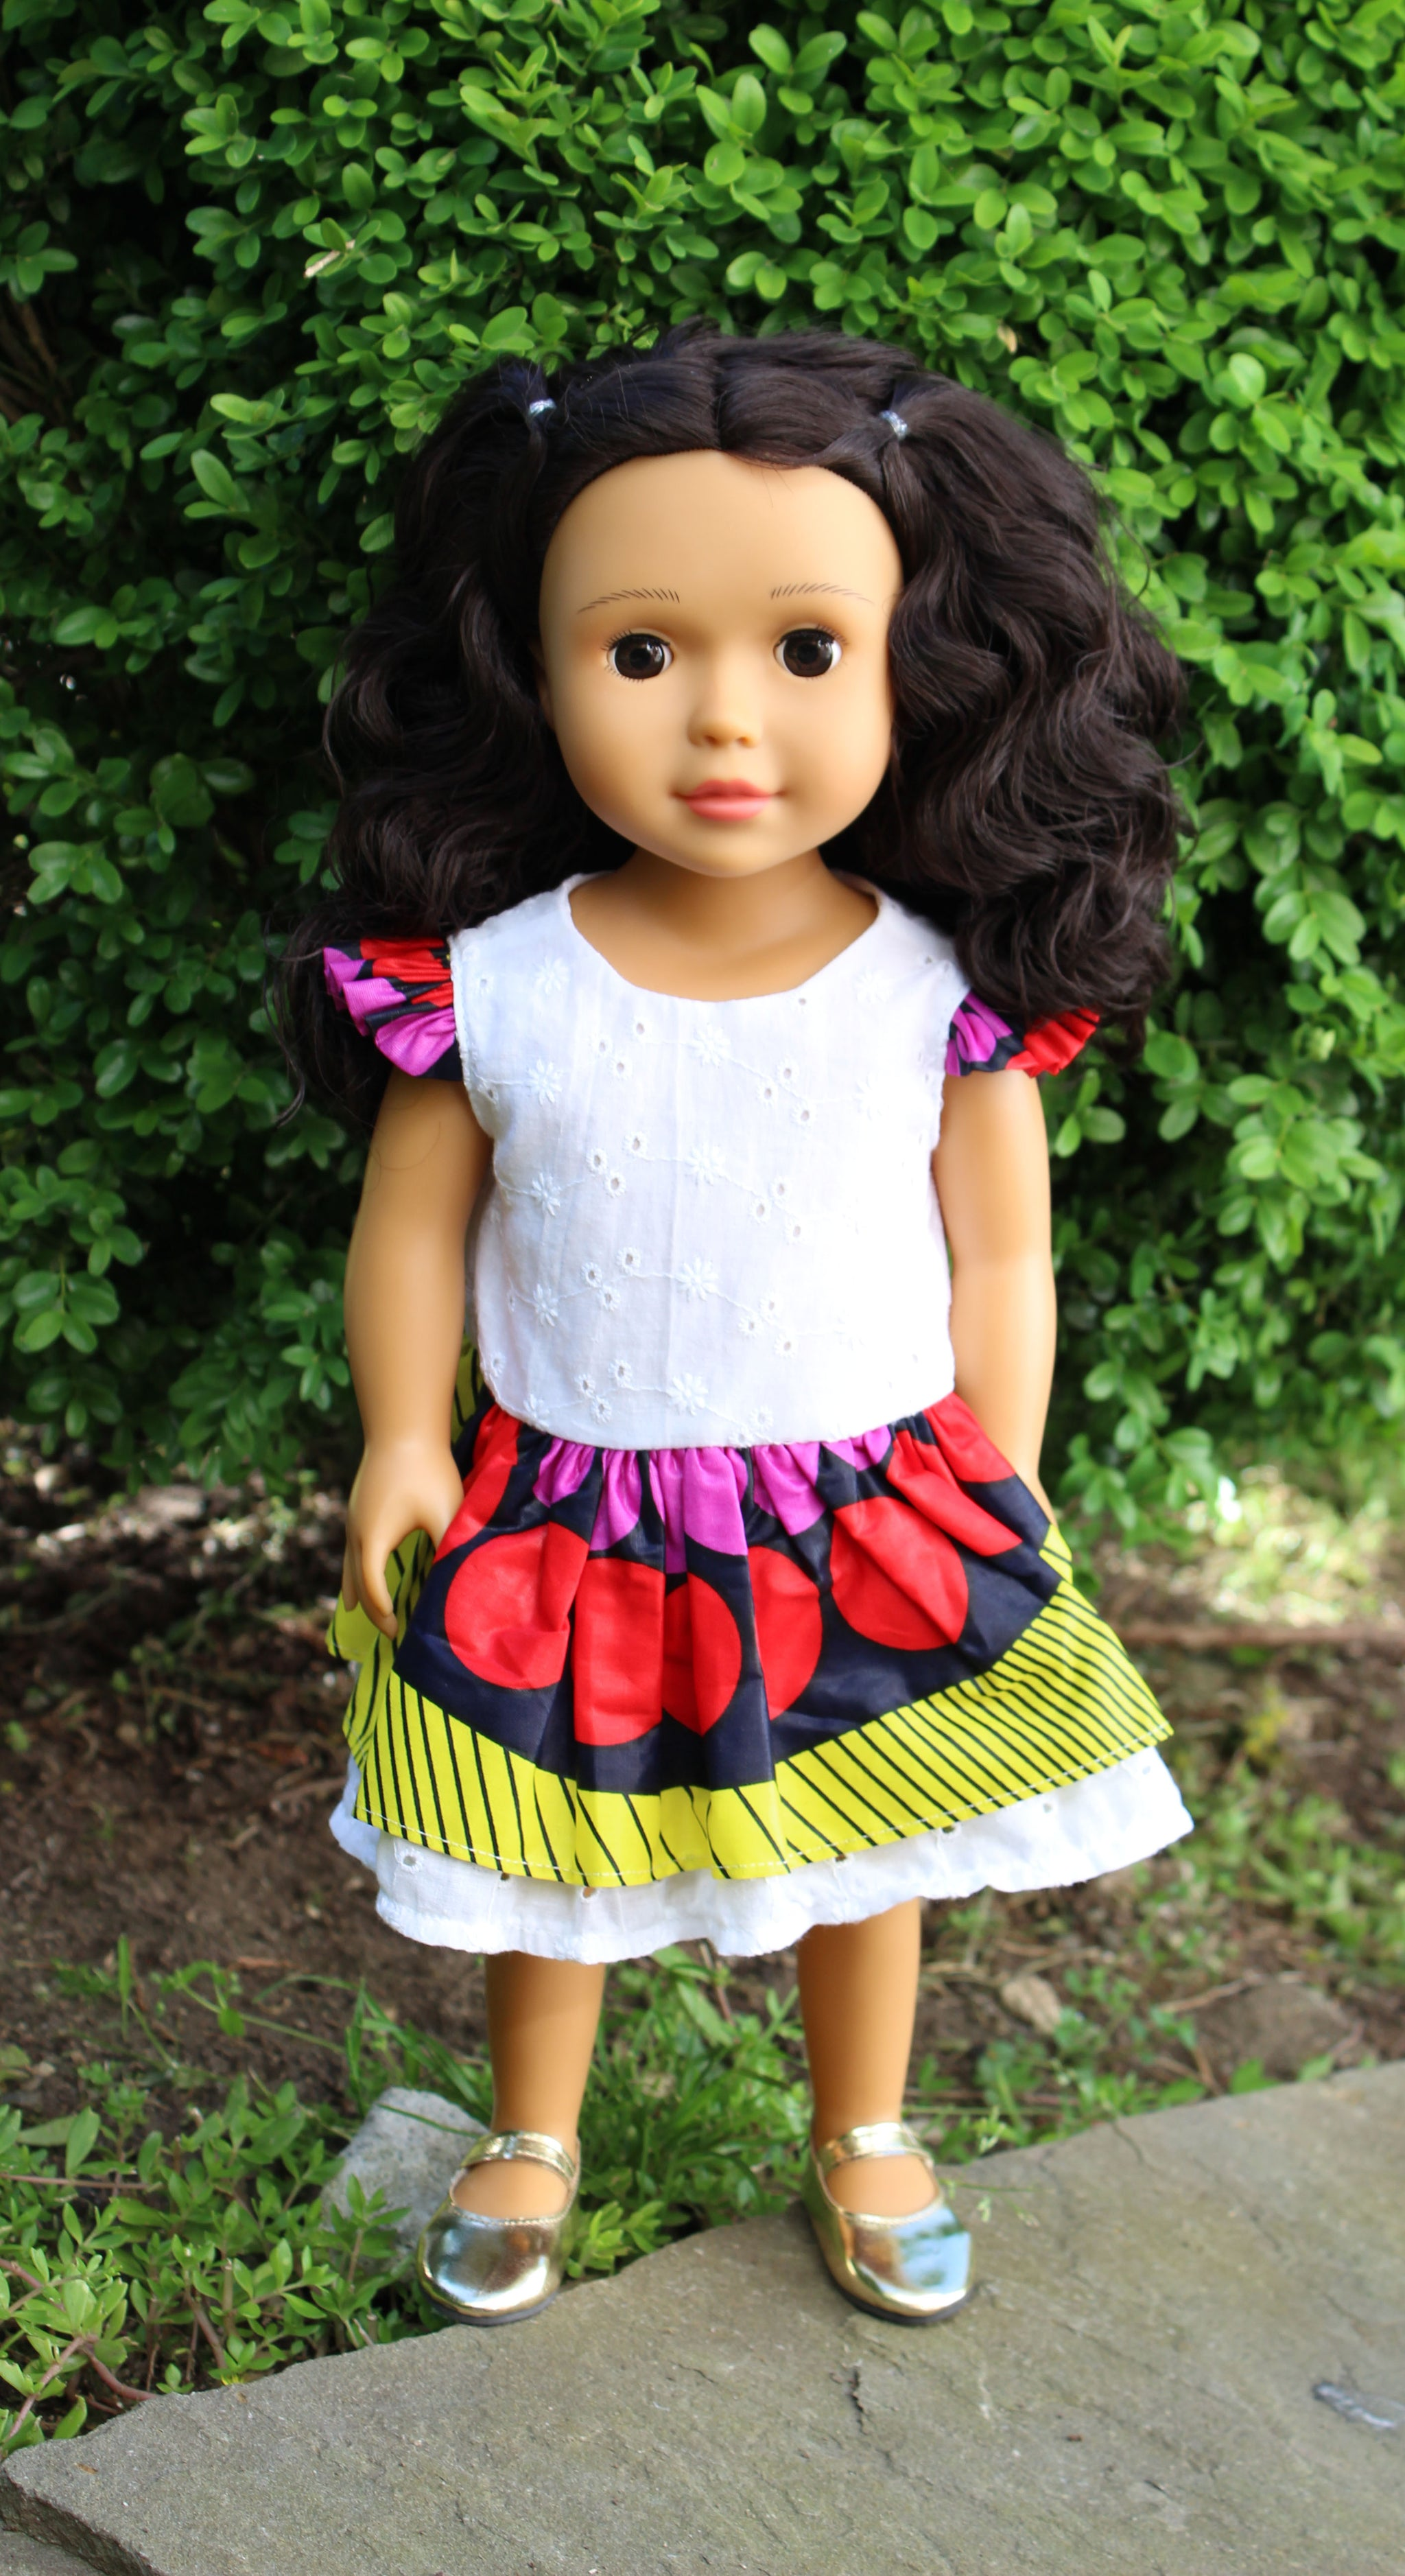 dd83651a7 Light Brown Skin Tone Doll Long Wavy Hair - IkuziDolls